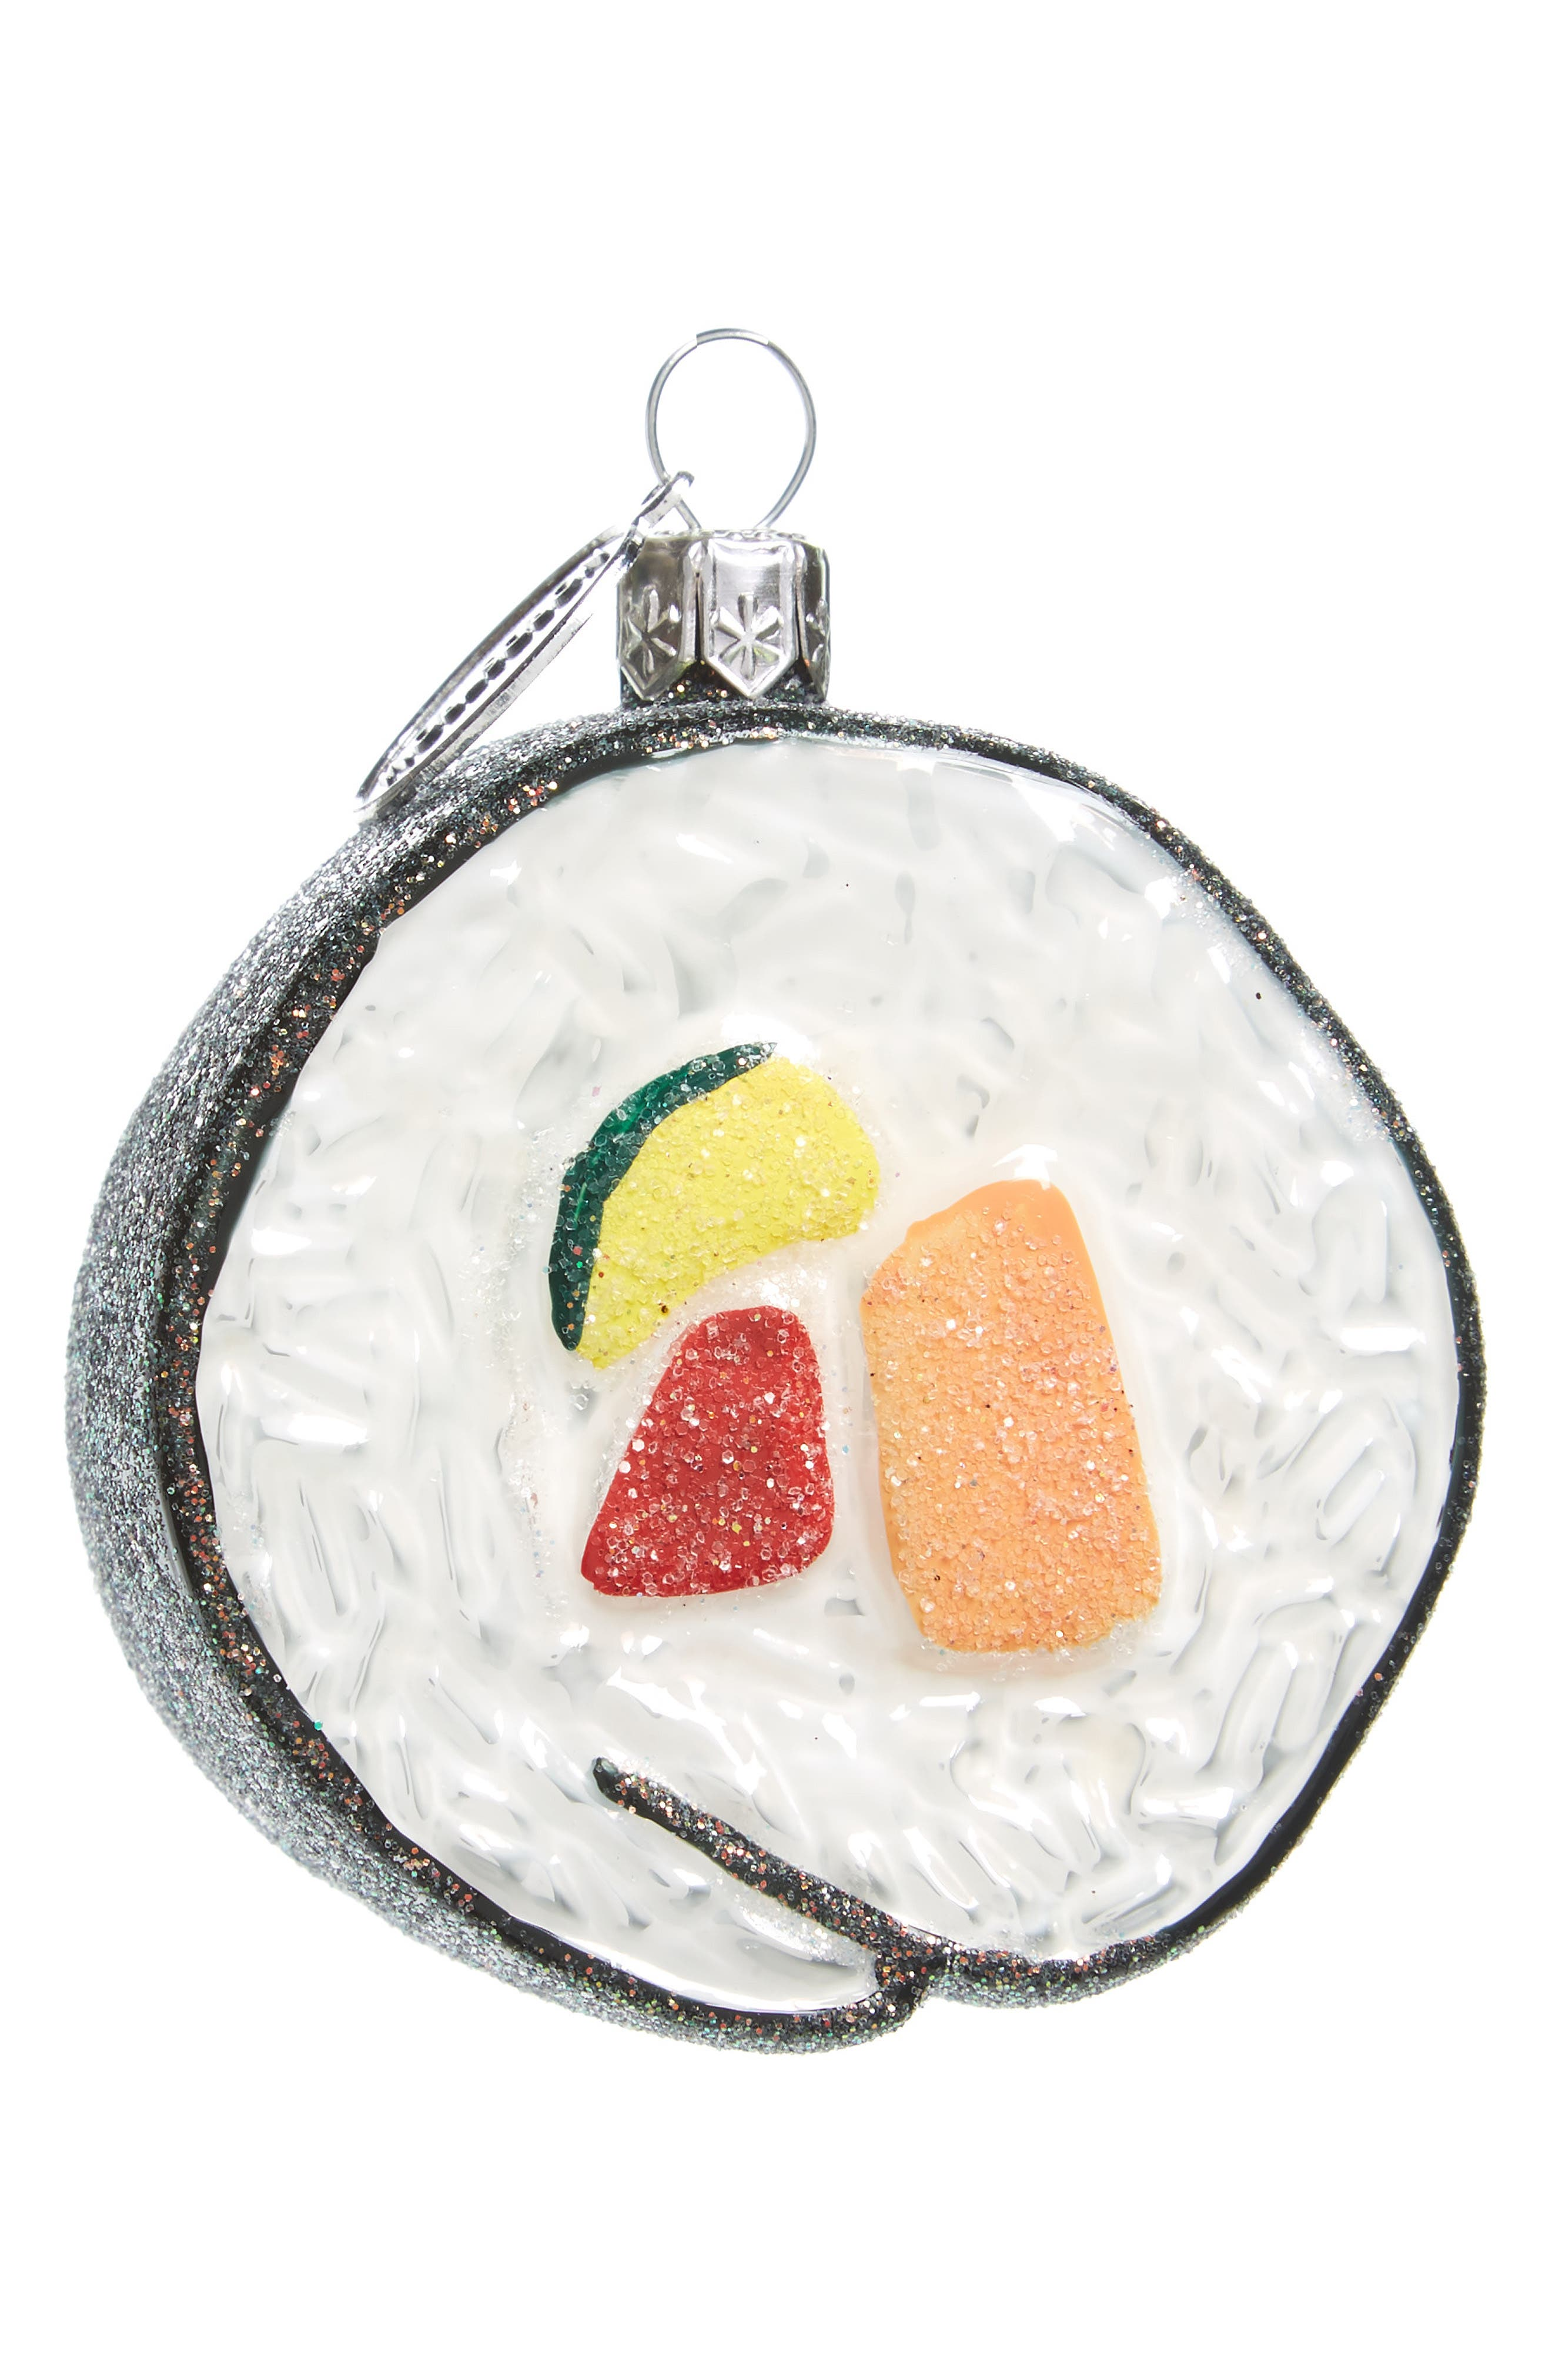 Nordstrom at Home Sushi Roll Glass Ornament